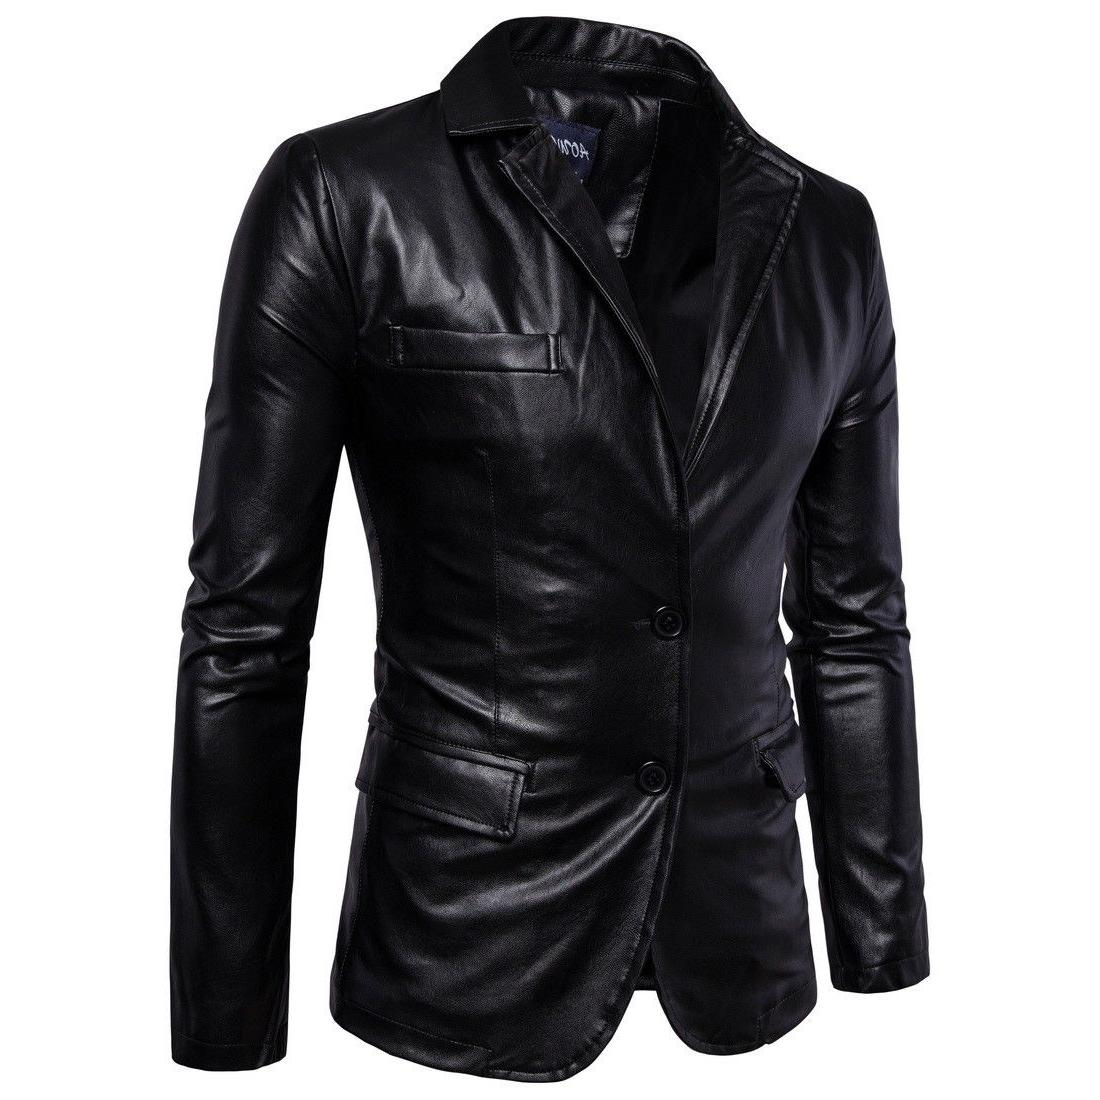 Hot Leather Clothing Simple Back Jacket Top